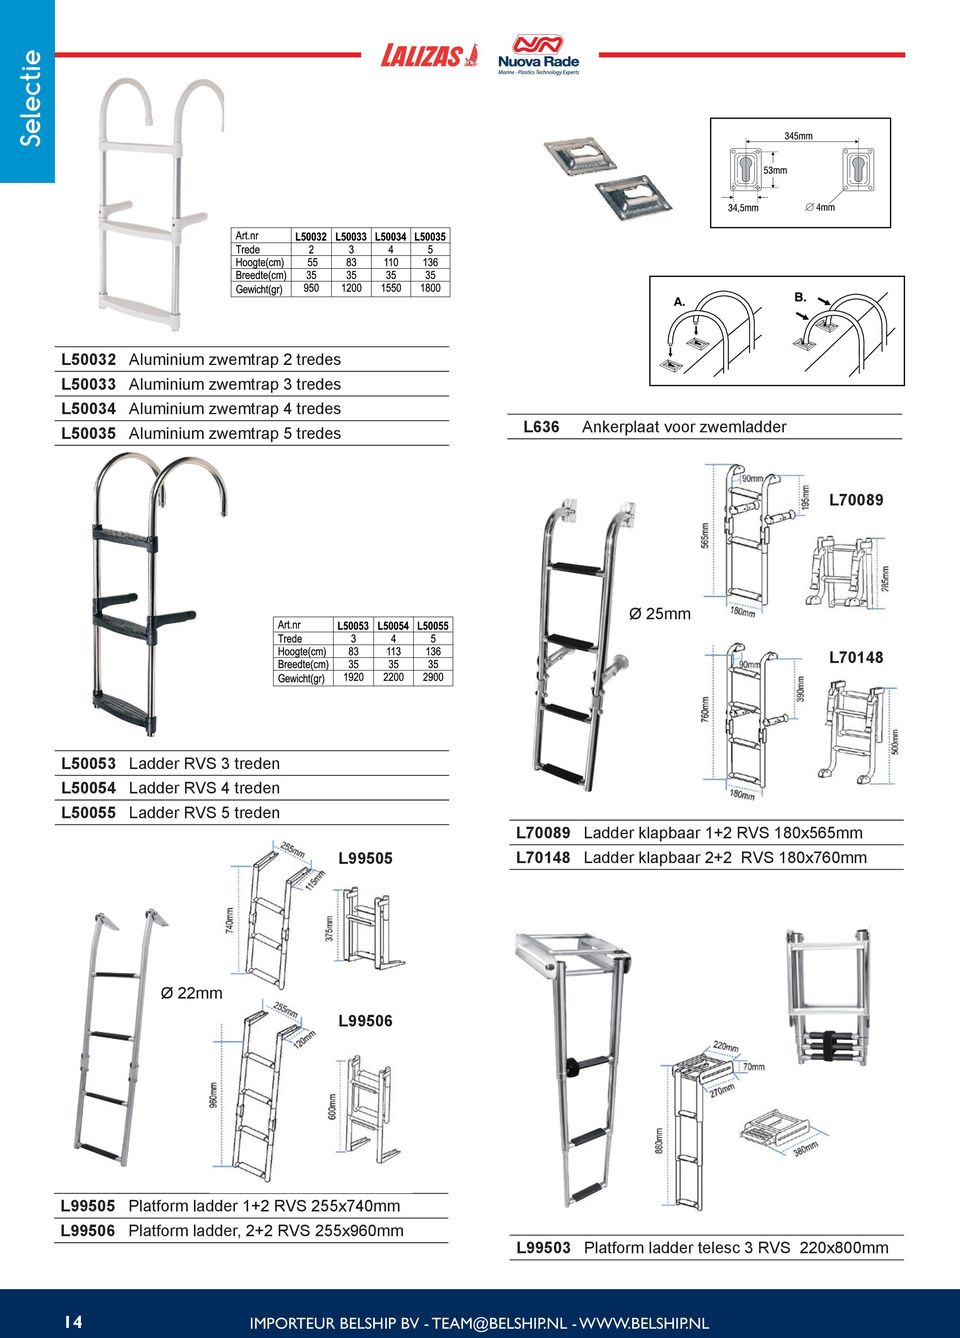 Ladder klapbaar 1+2 RVS 180x565mm L99505 L70148 Ladder klapbaar 2+2 RVS 180x760mm Ø 22mm L99506 L99505 Platform ladder 1+2 RVS 255x740mm